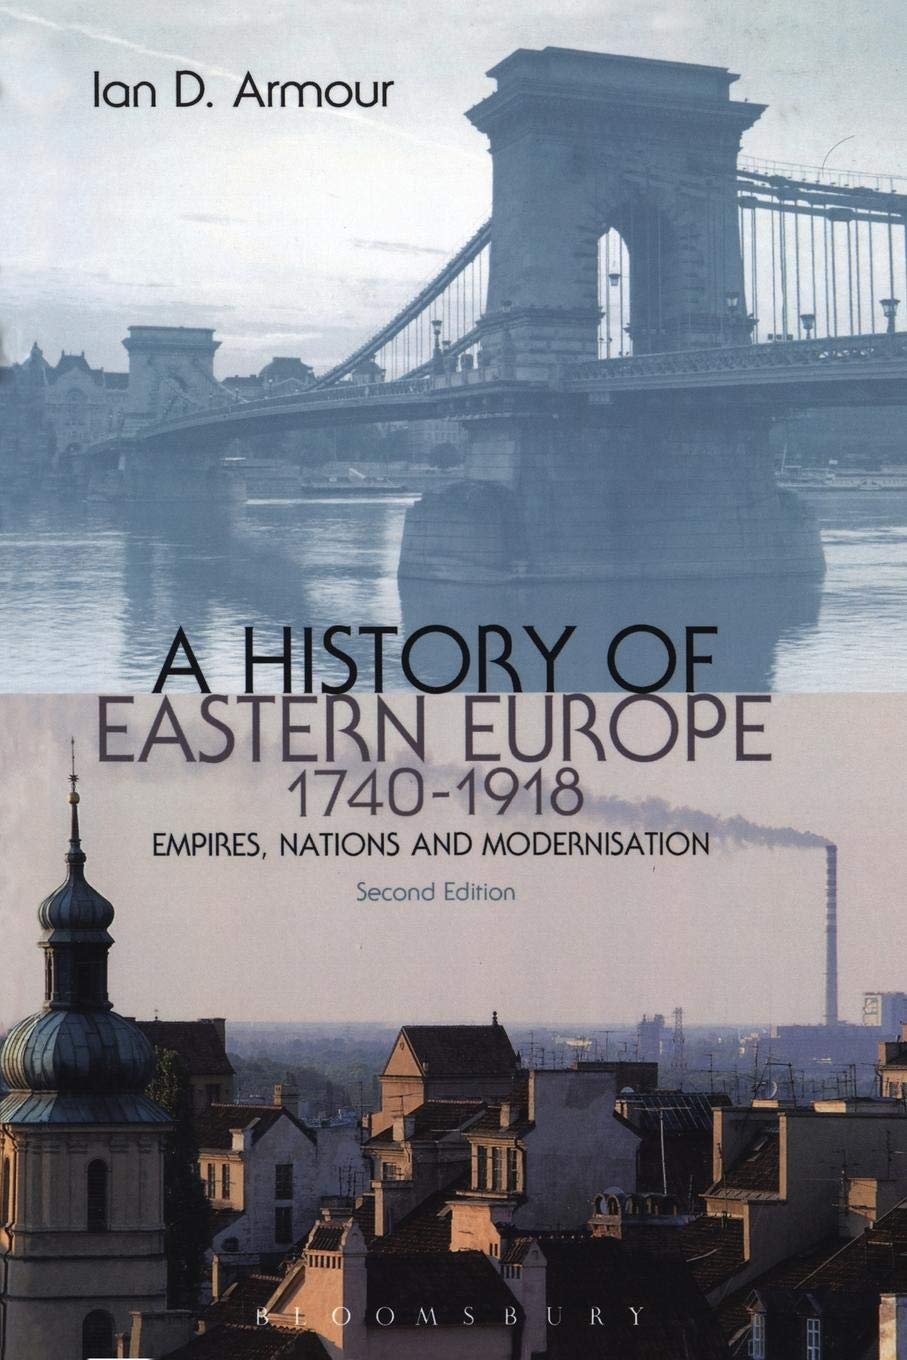 A history of Eastern Europe, 1740-1918: Empires, nations and modernisation [Book Review]